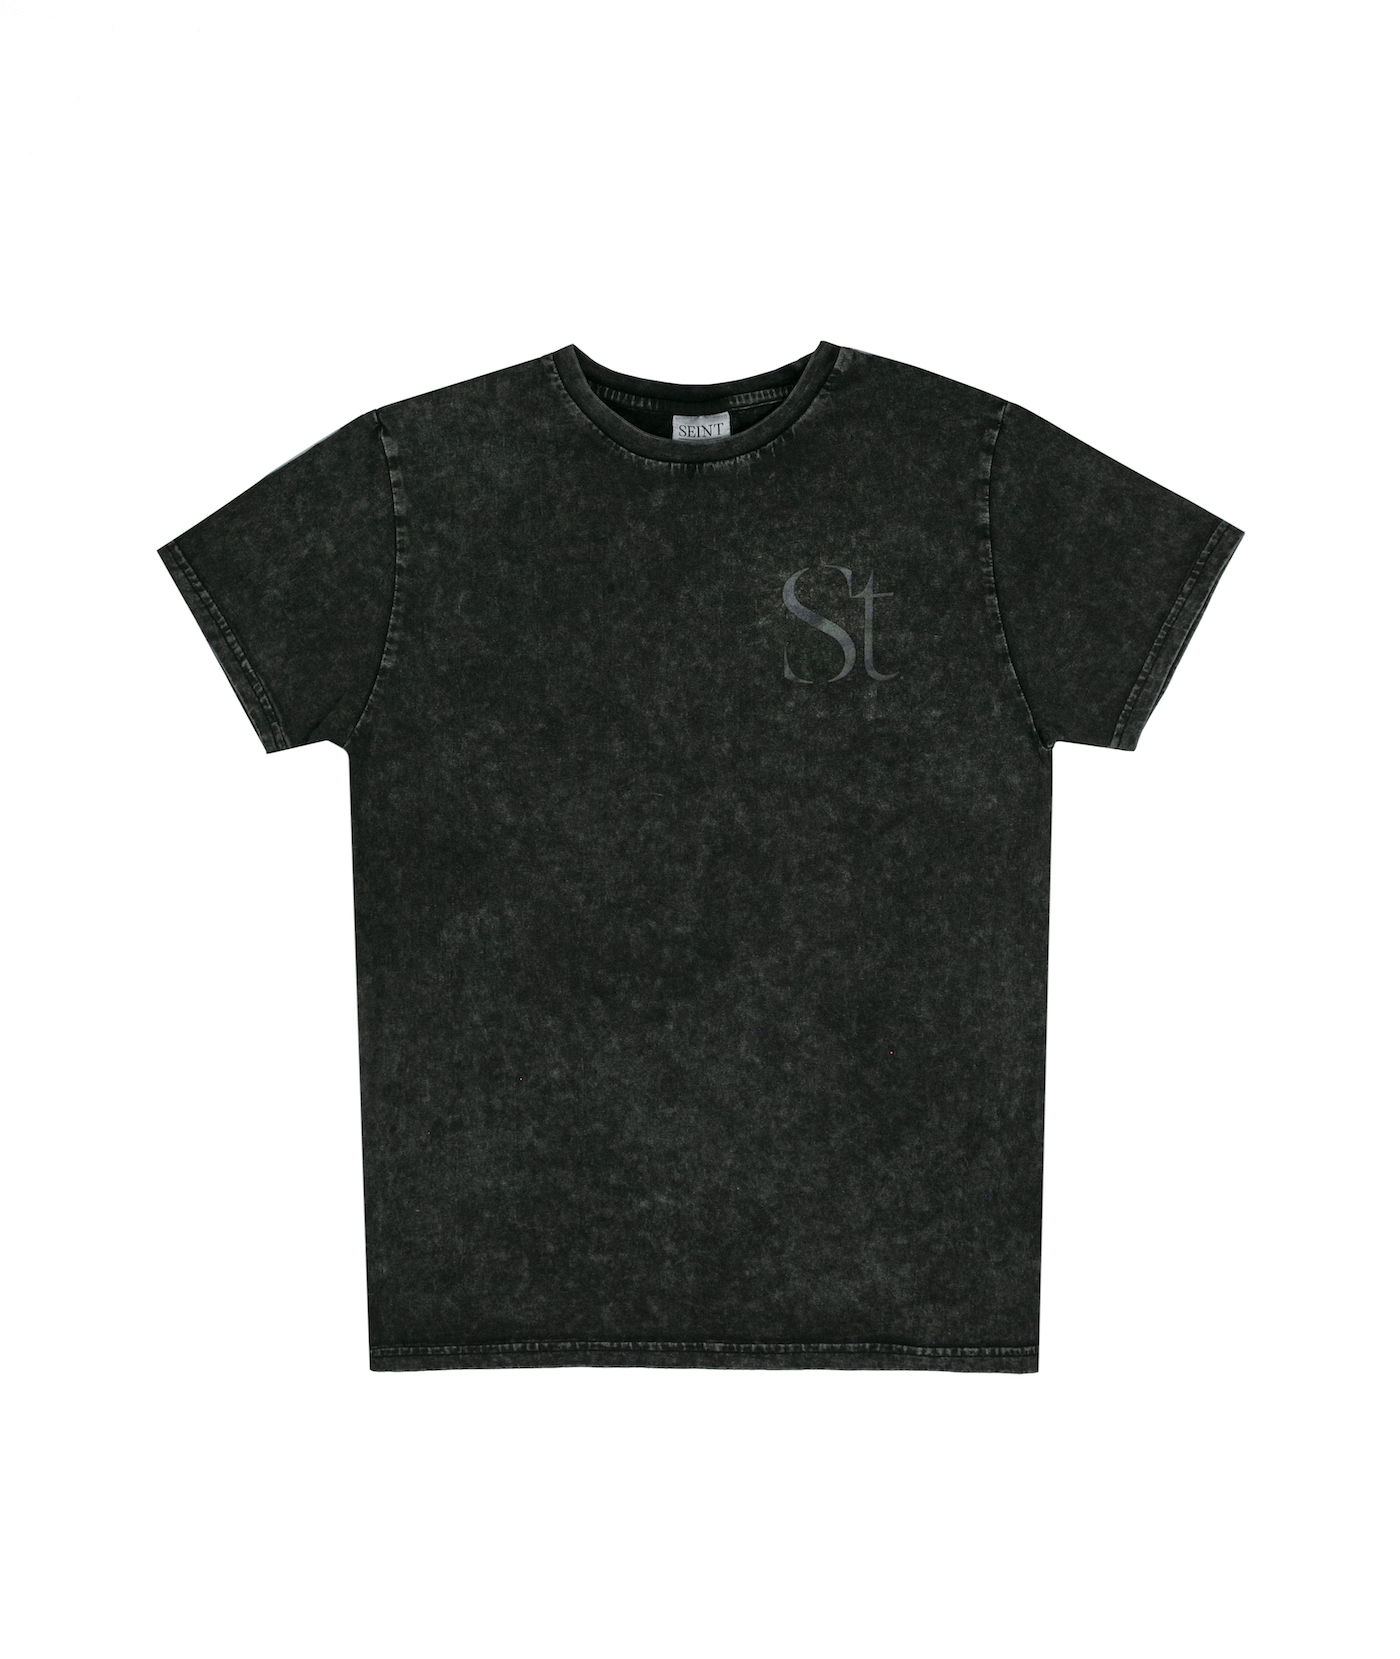 St. Graphic Tee (XS-2XL) Coal